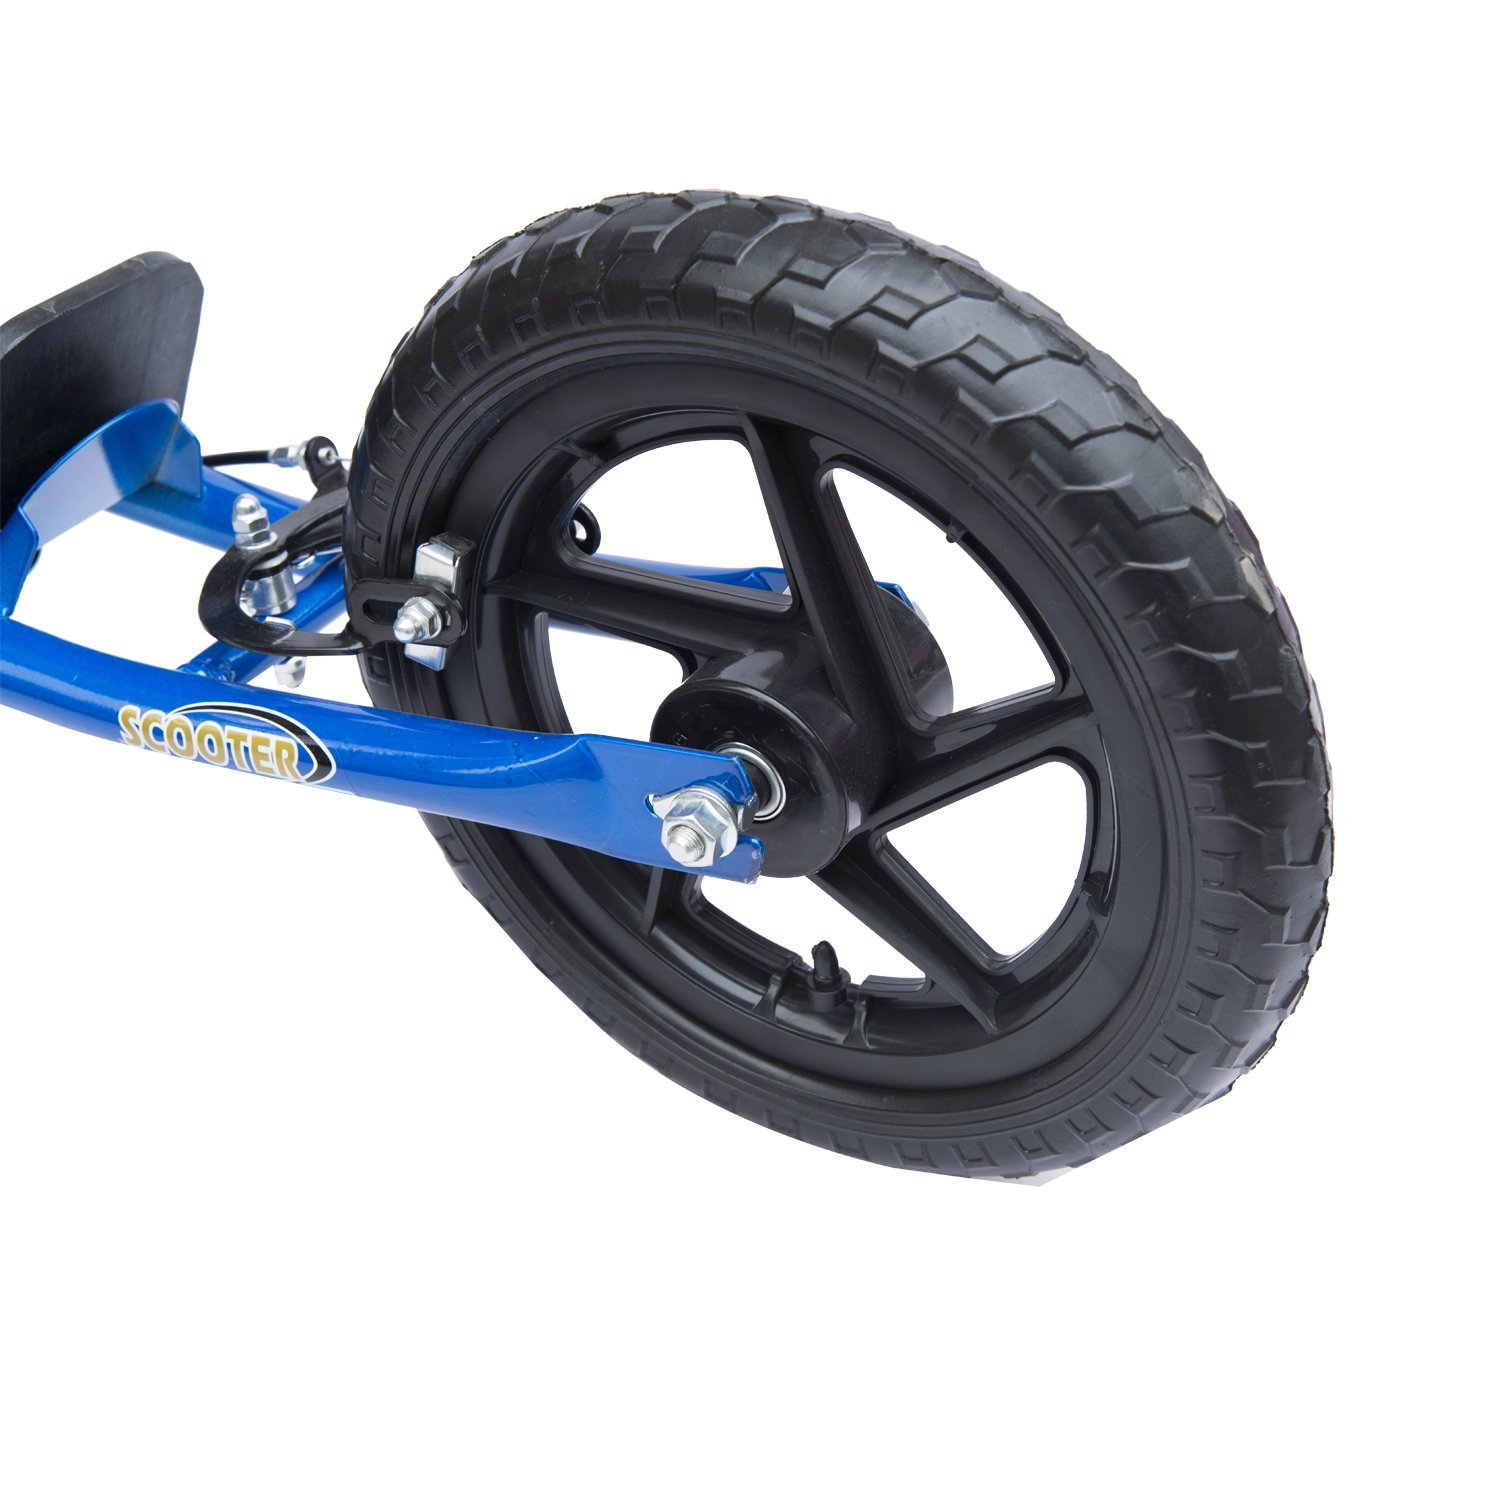 Teen-Push-Scooter-Kids-Children-Stunt-Scooter-Bike-Bicycle-Ride-On-12-034-Tyres-New thumbnail 13